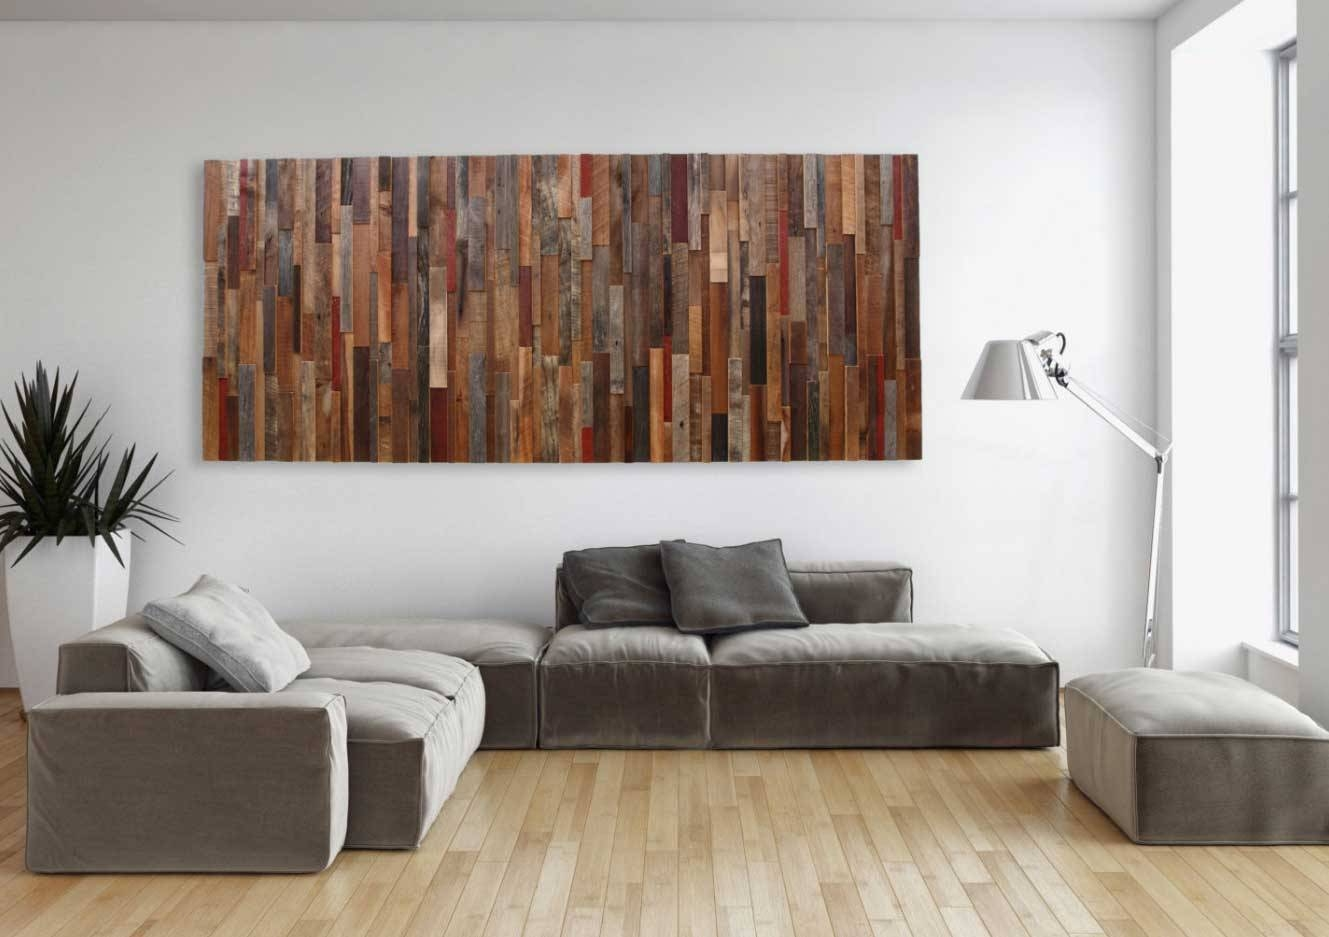 Oversized Wall Art Contemporary Sculpture Ideas | Home Interior Within Recent Oversized Wall Art (View 19 of 25)